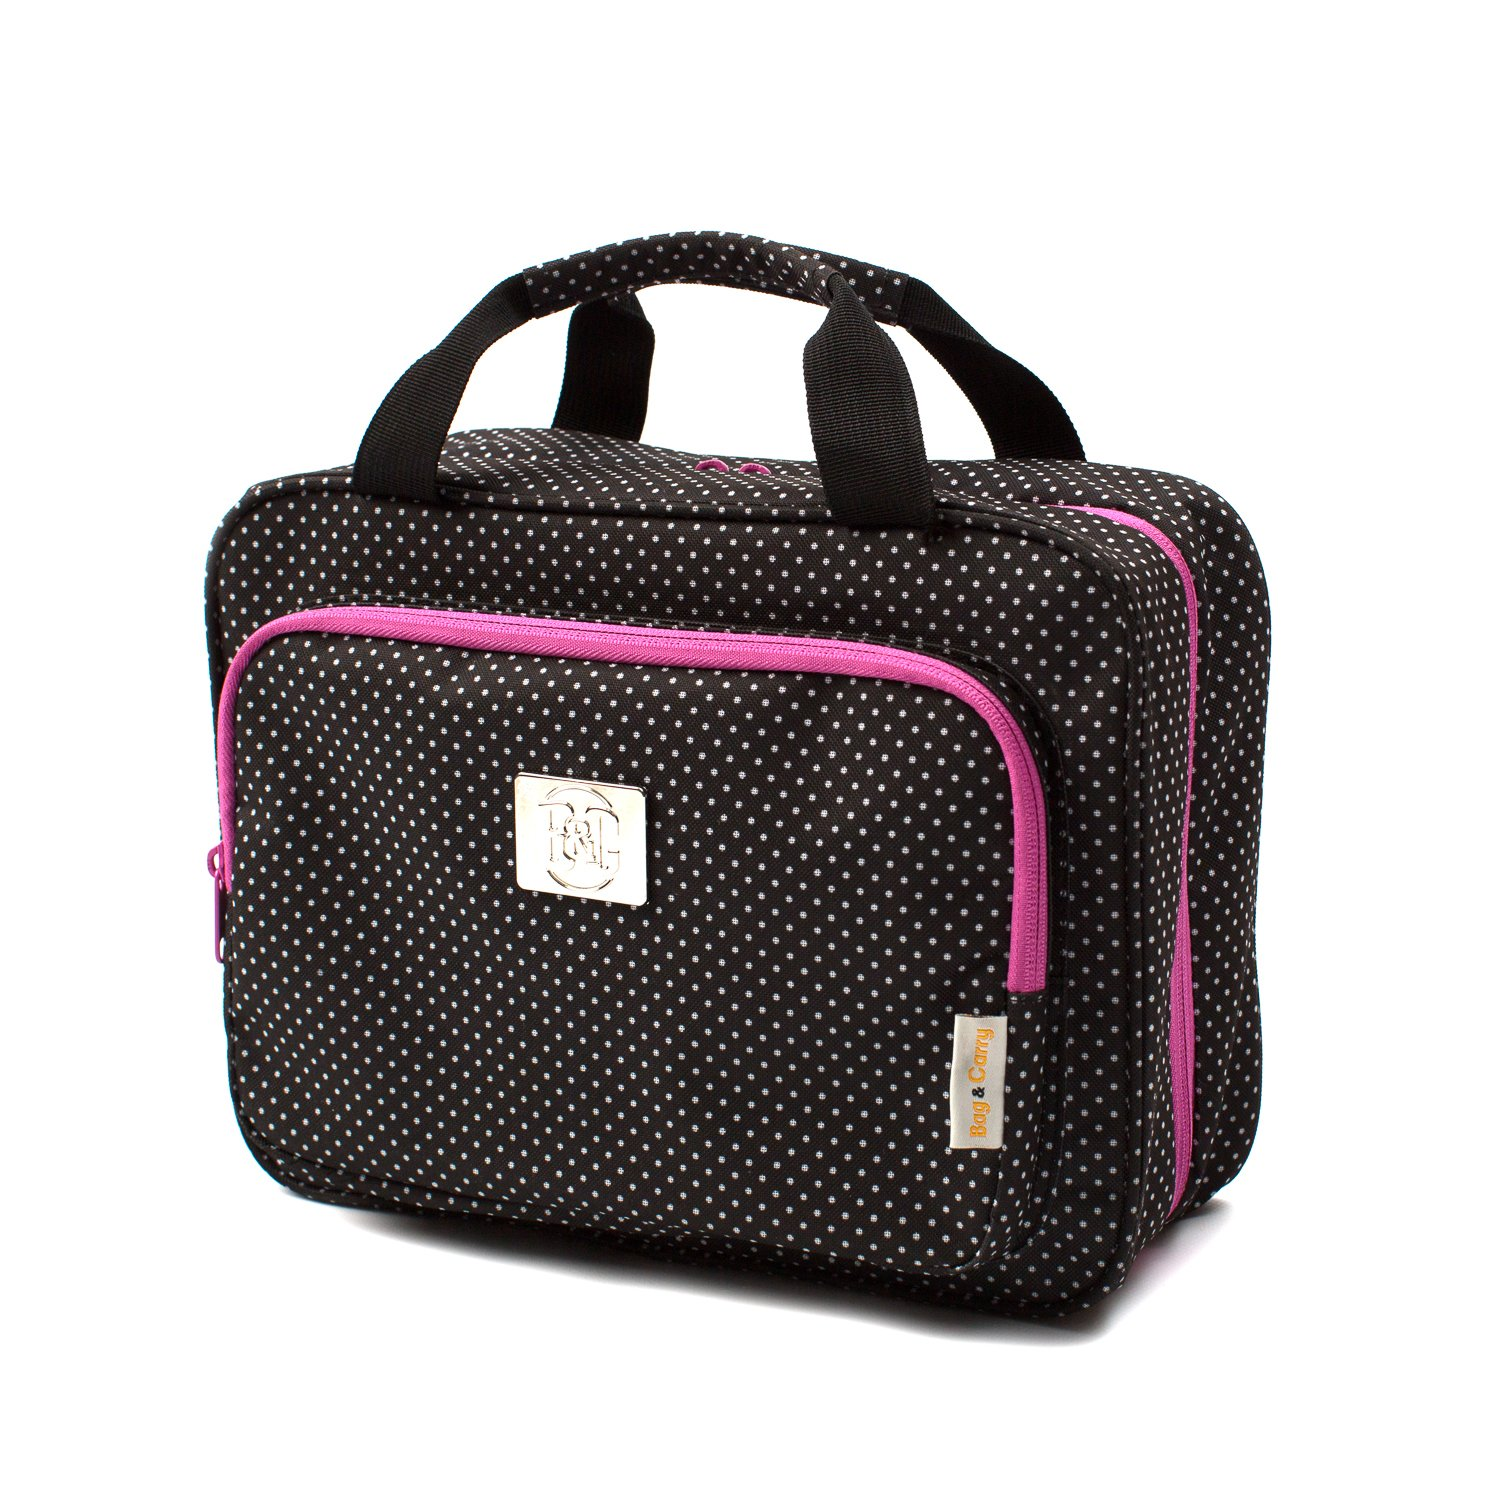 Large Travel Cosmetic Bag For Women - Hanging Travel Toiletry And Makeup Bag With Many Pockets Polka Dot